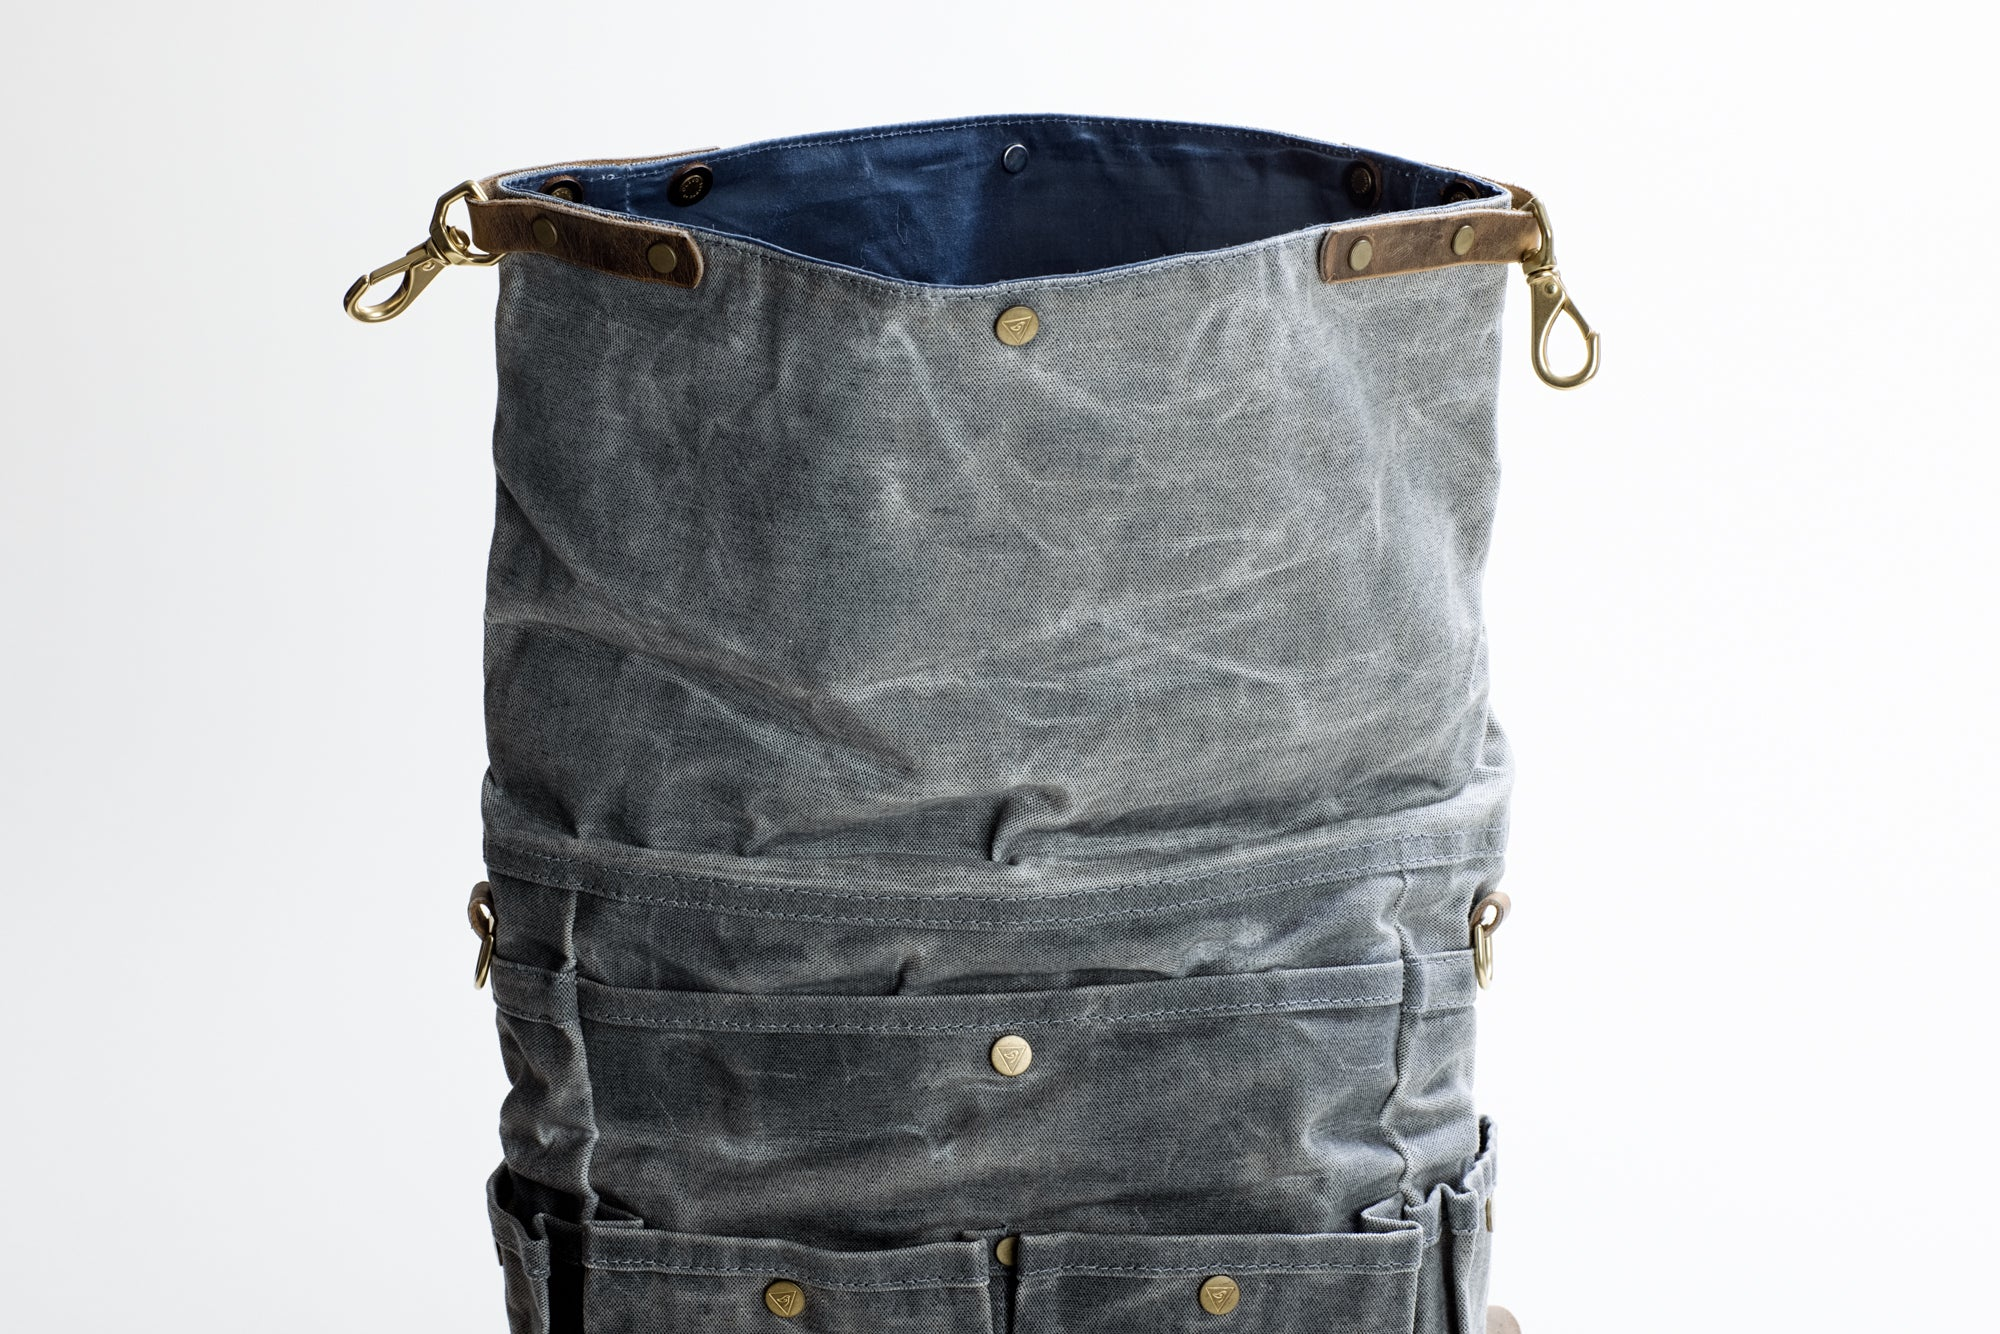 The Bees Knees Backpack in Waxed Salt-n-Pepper Canvas